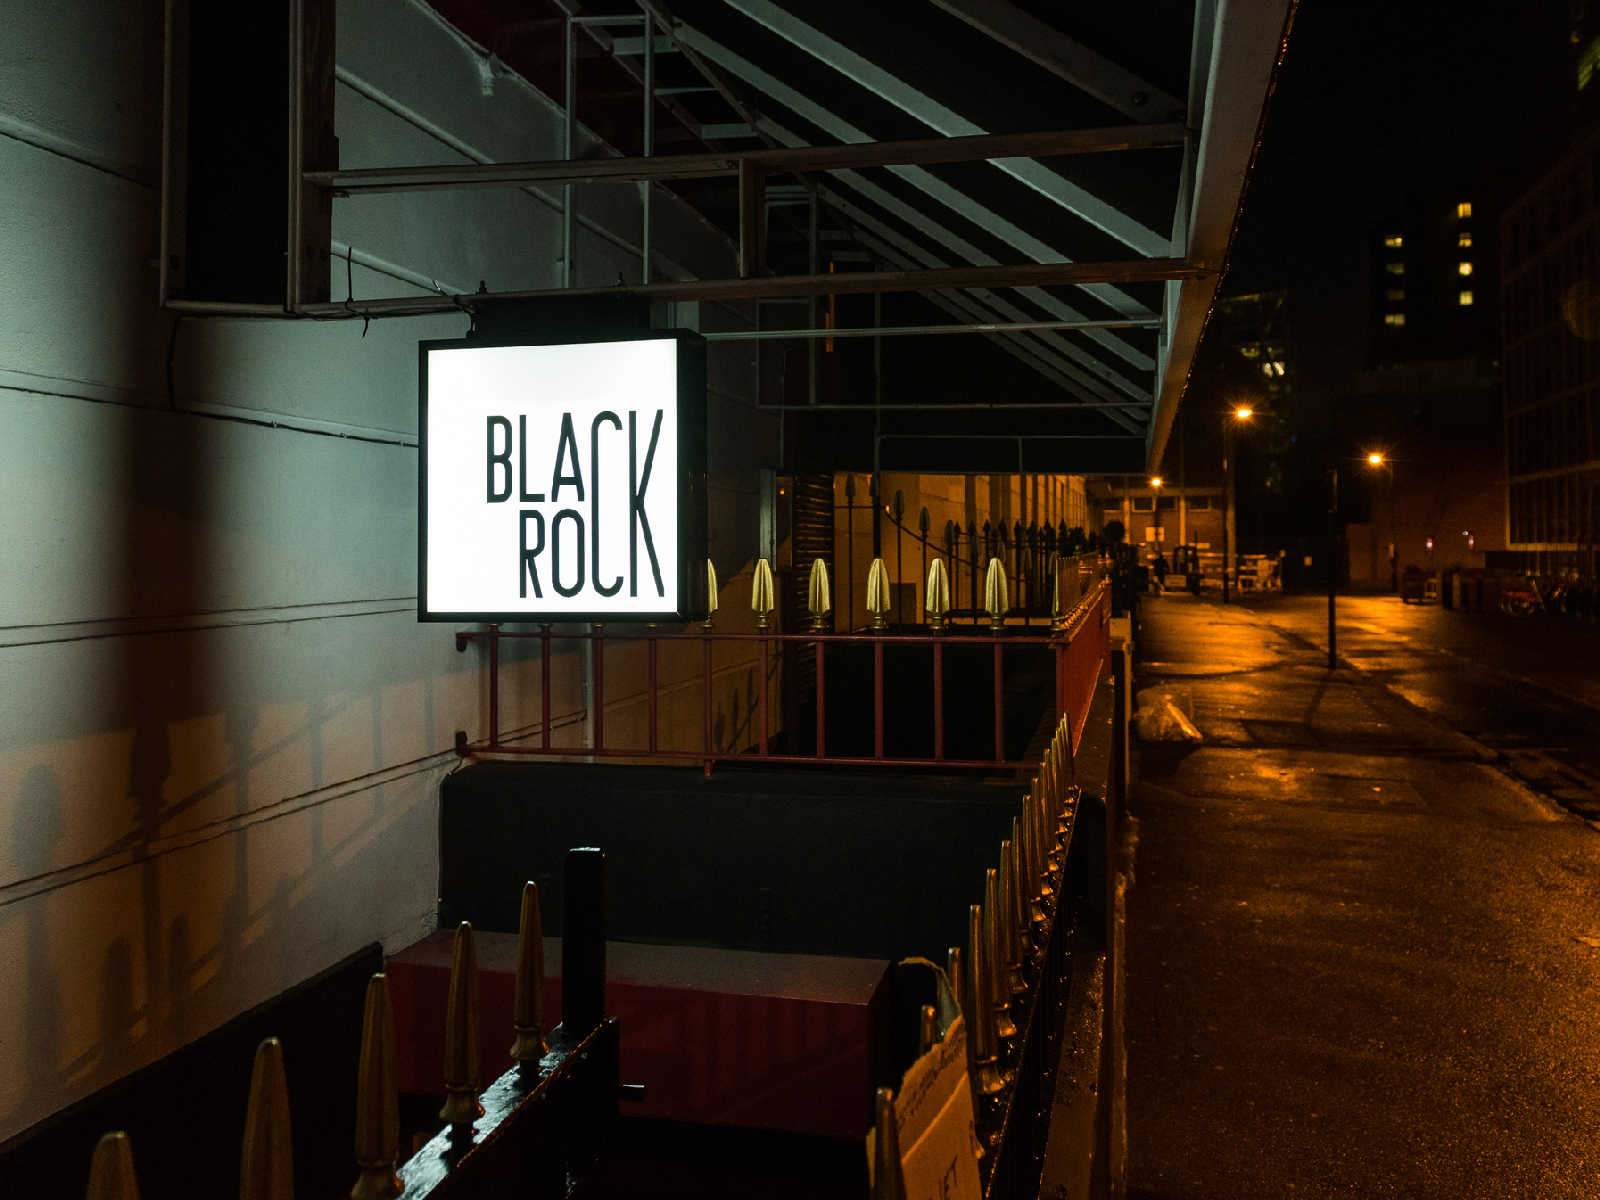 black-rock-whisky-hotel-2-FT-BLOG0719.jpg